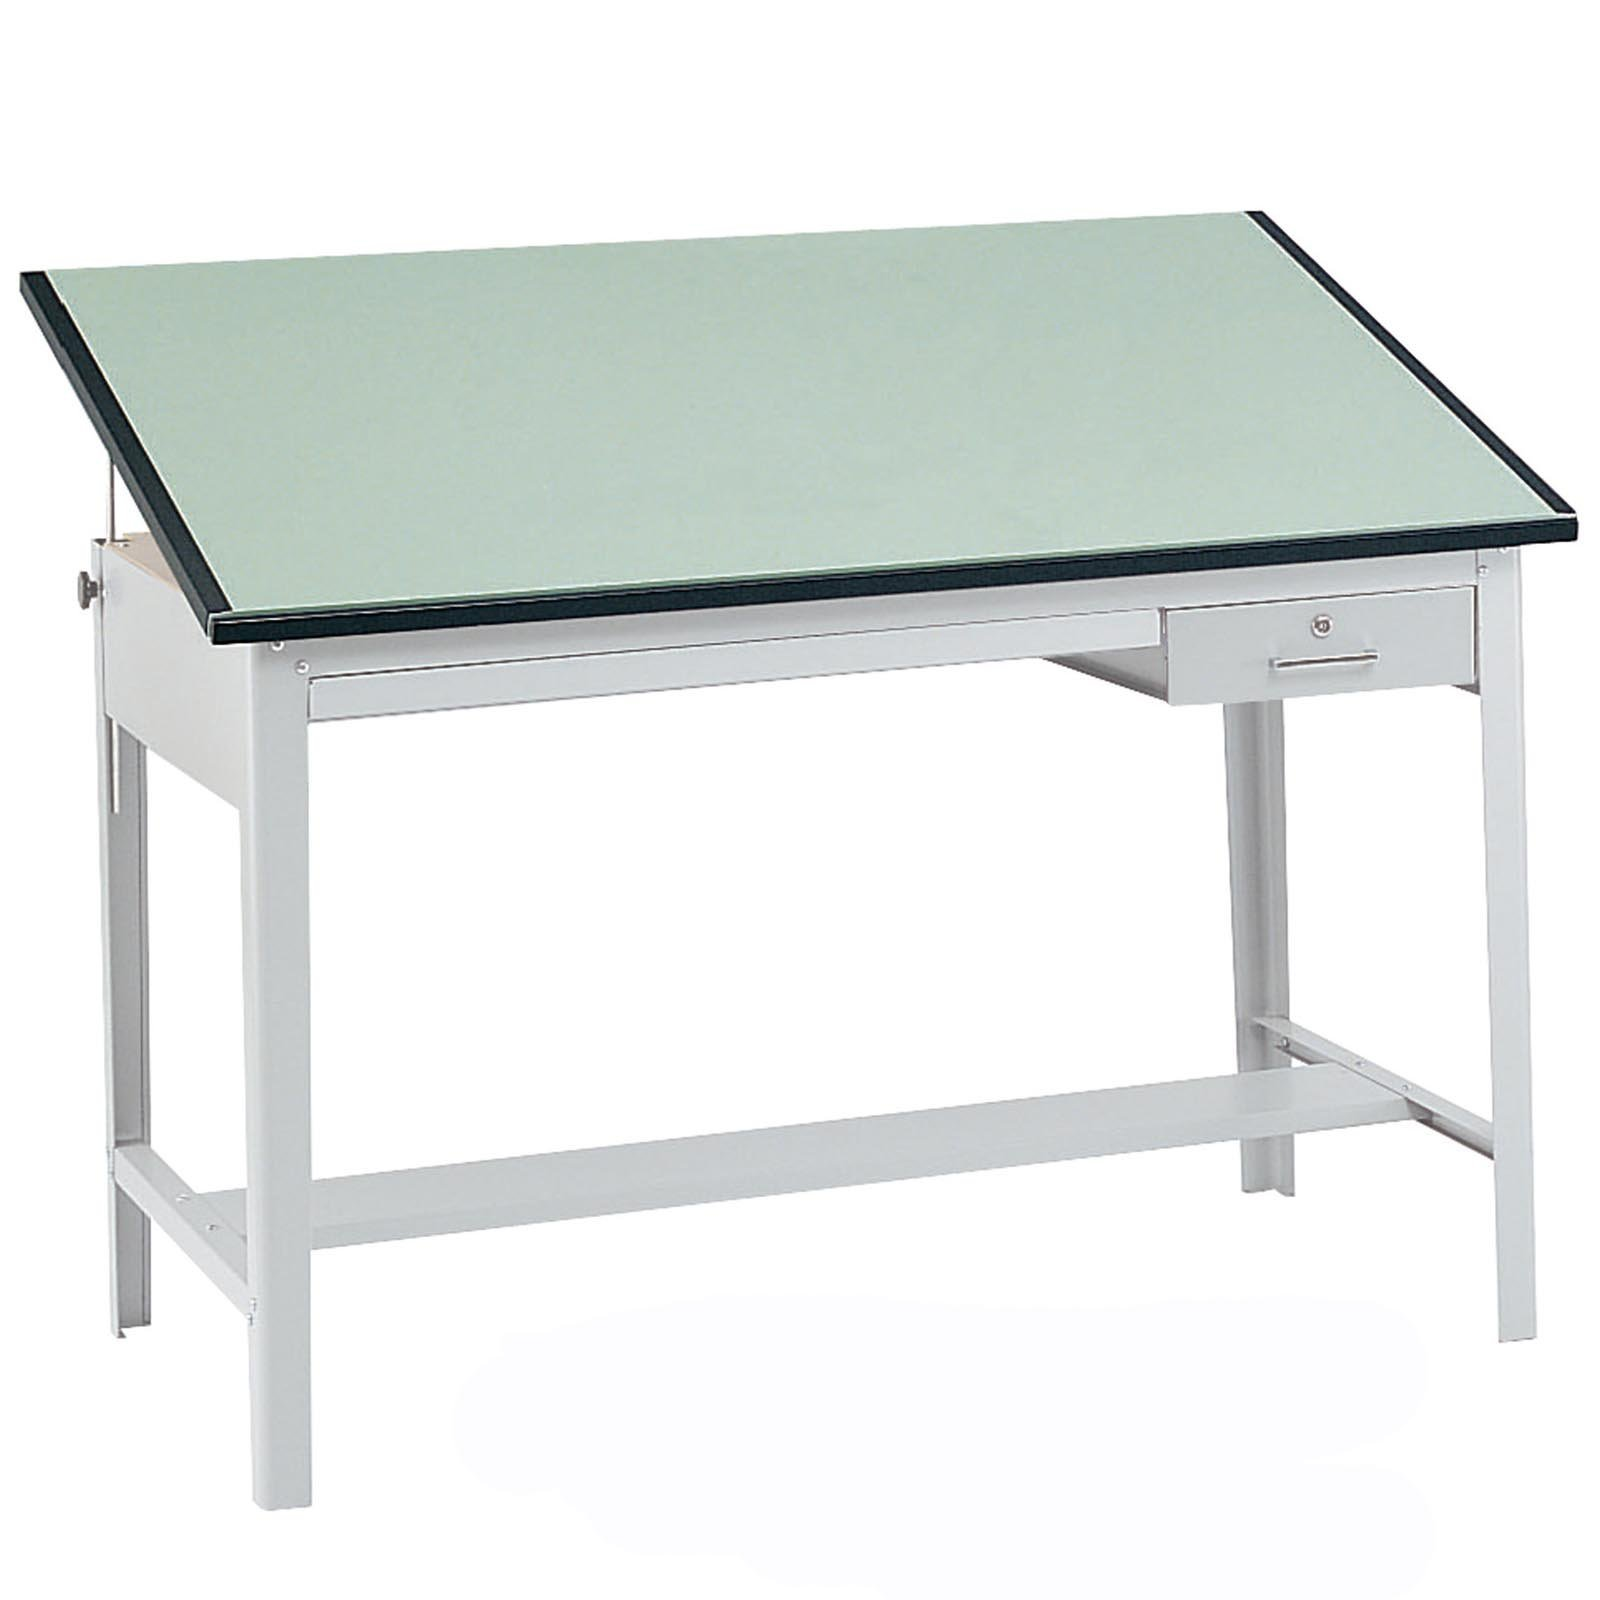 Drawing Table Finest Tabletop Drafting Could Have A